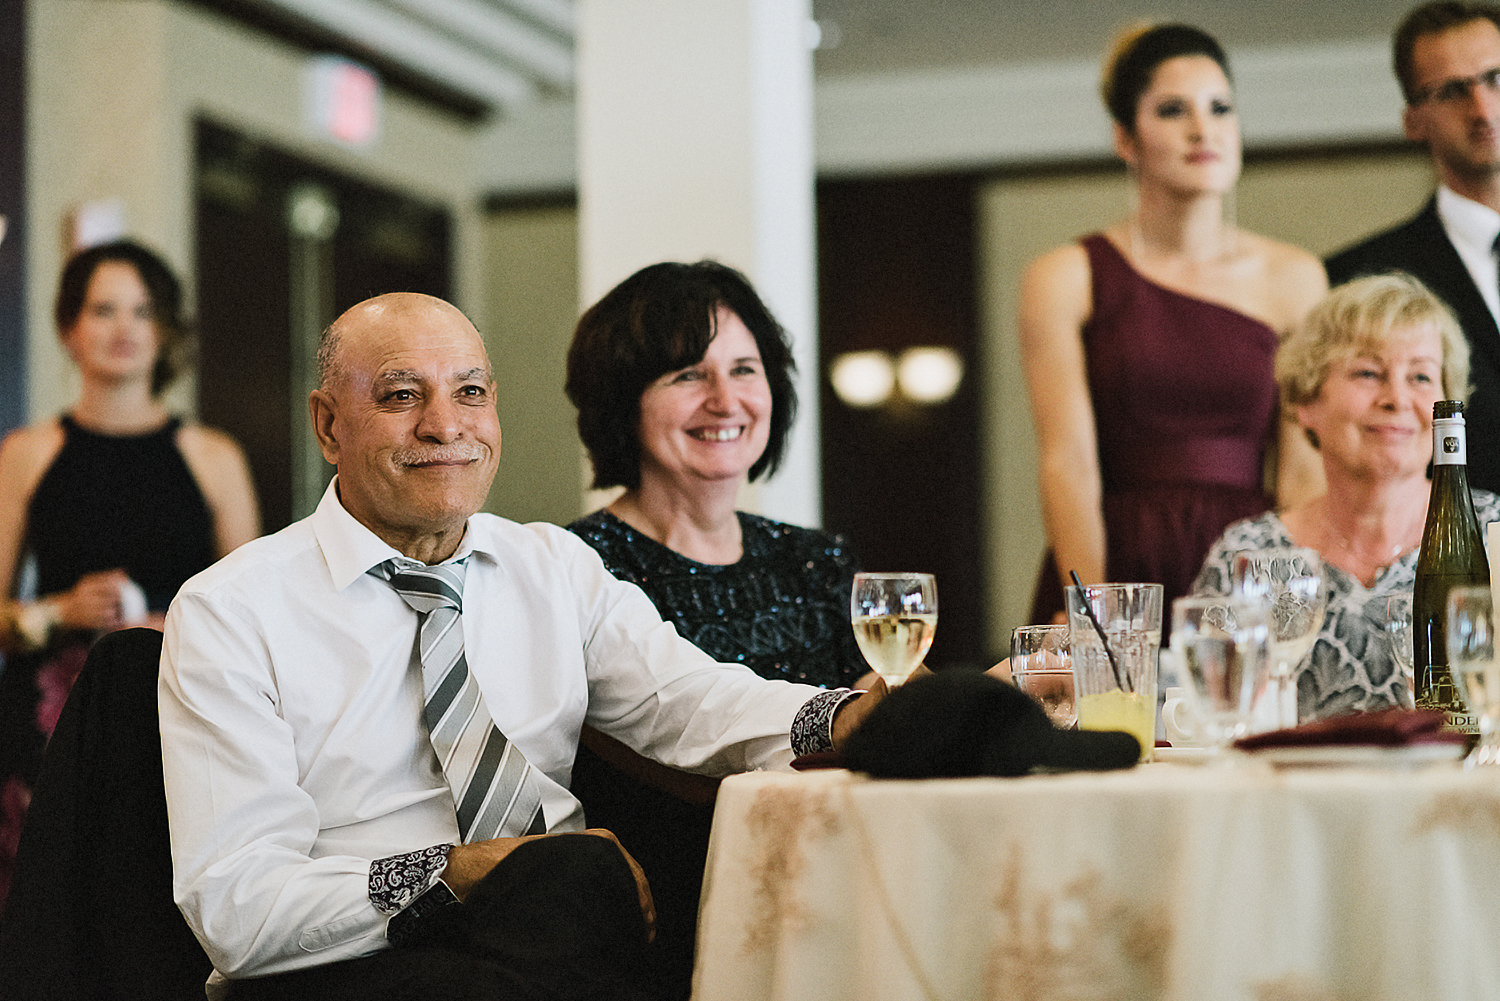 Toronto's-Best-Film-Wedding-Photography-3B-Photography-Multicultural-wedding-day-two-Hamilton-Grimsby-Toronto-Wedding-documentary-photojournalistic-photojournalism-prices-reception-guests-Father-of-groom-emotional.jpg